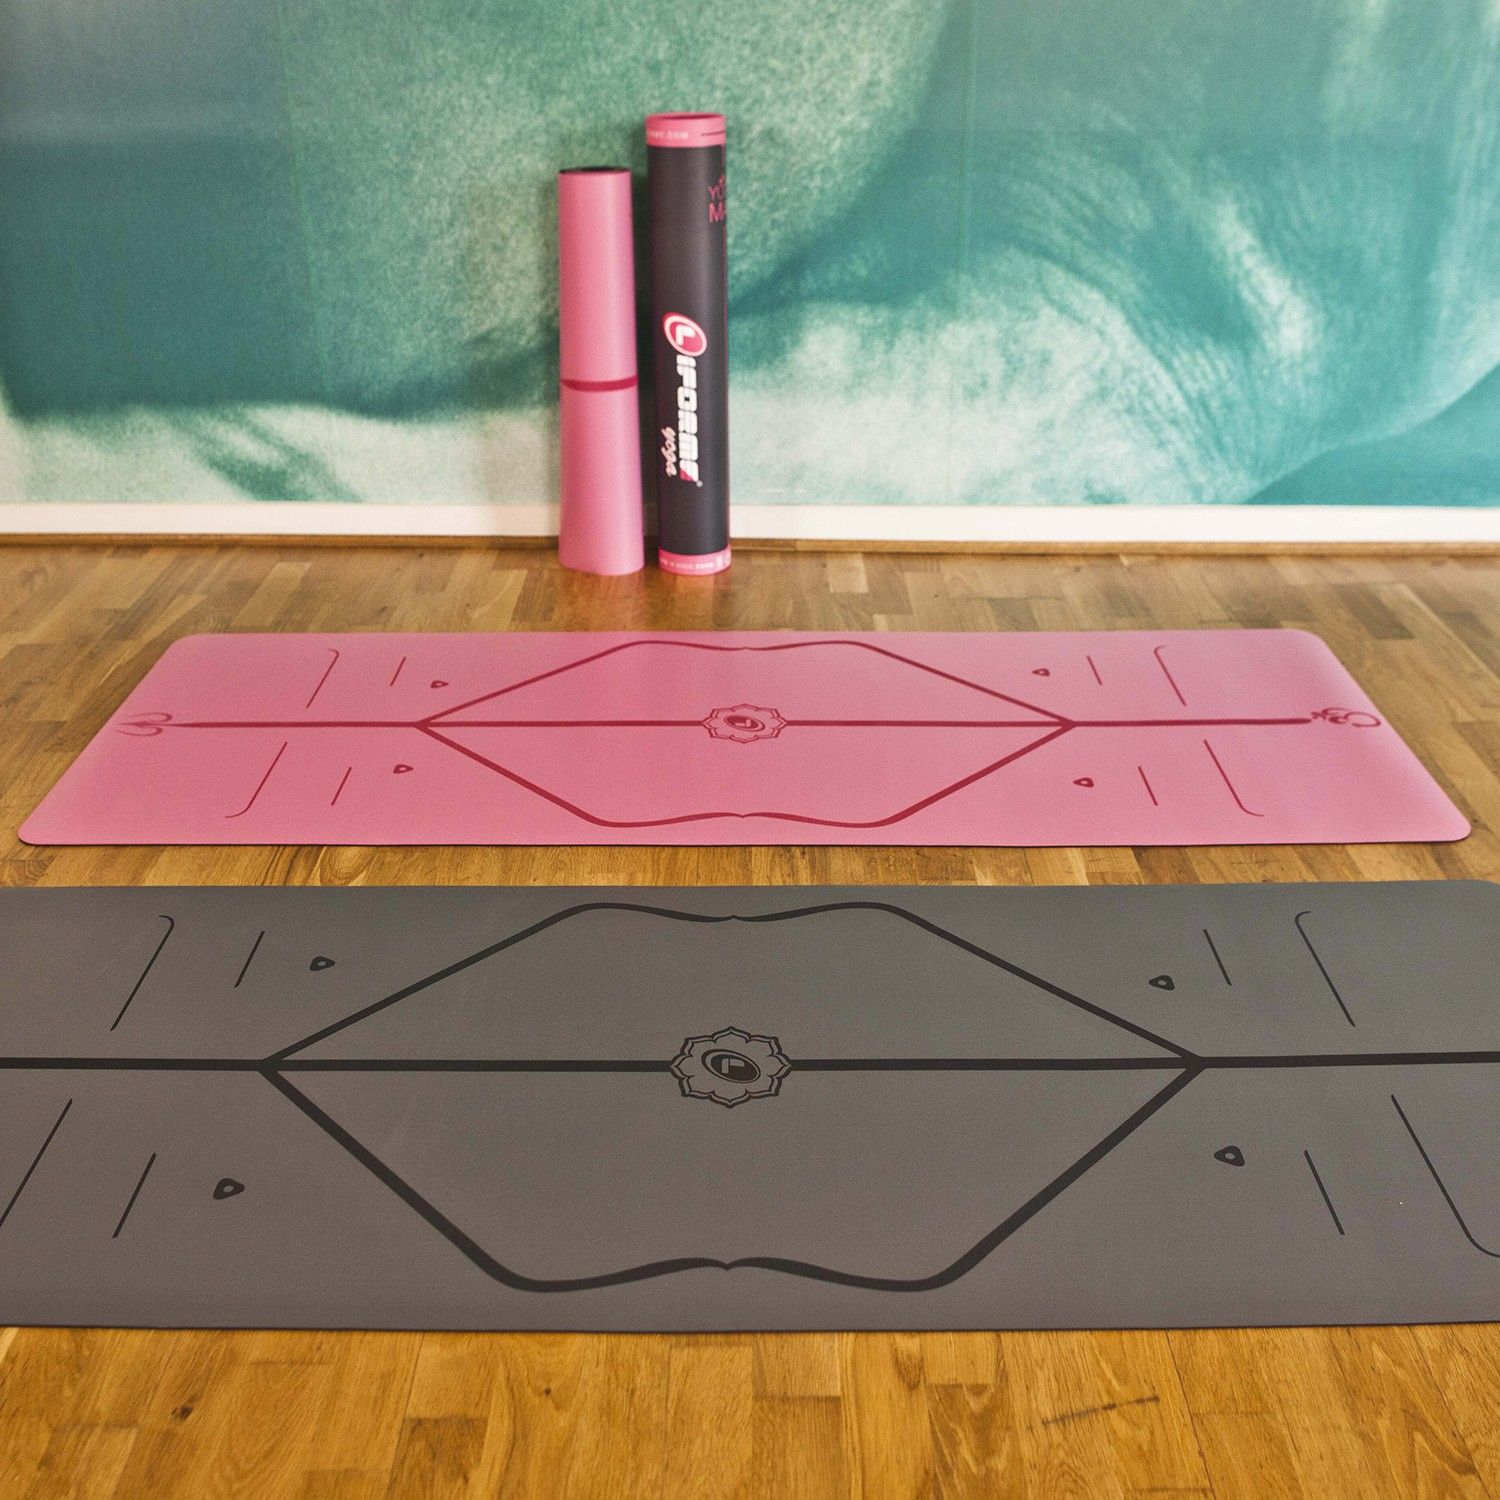 Yoga Mat By Liforme - Buy To Give